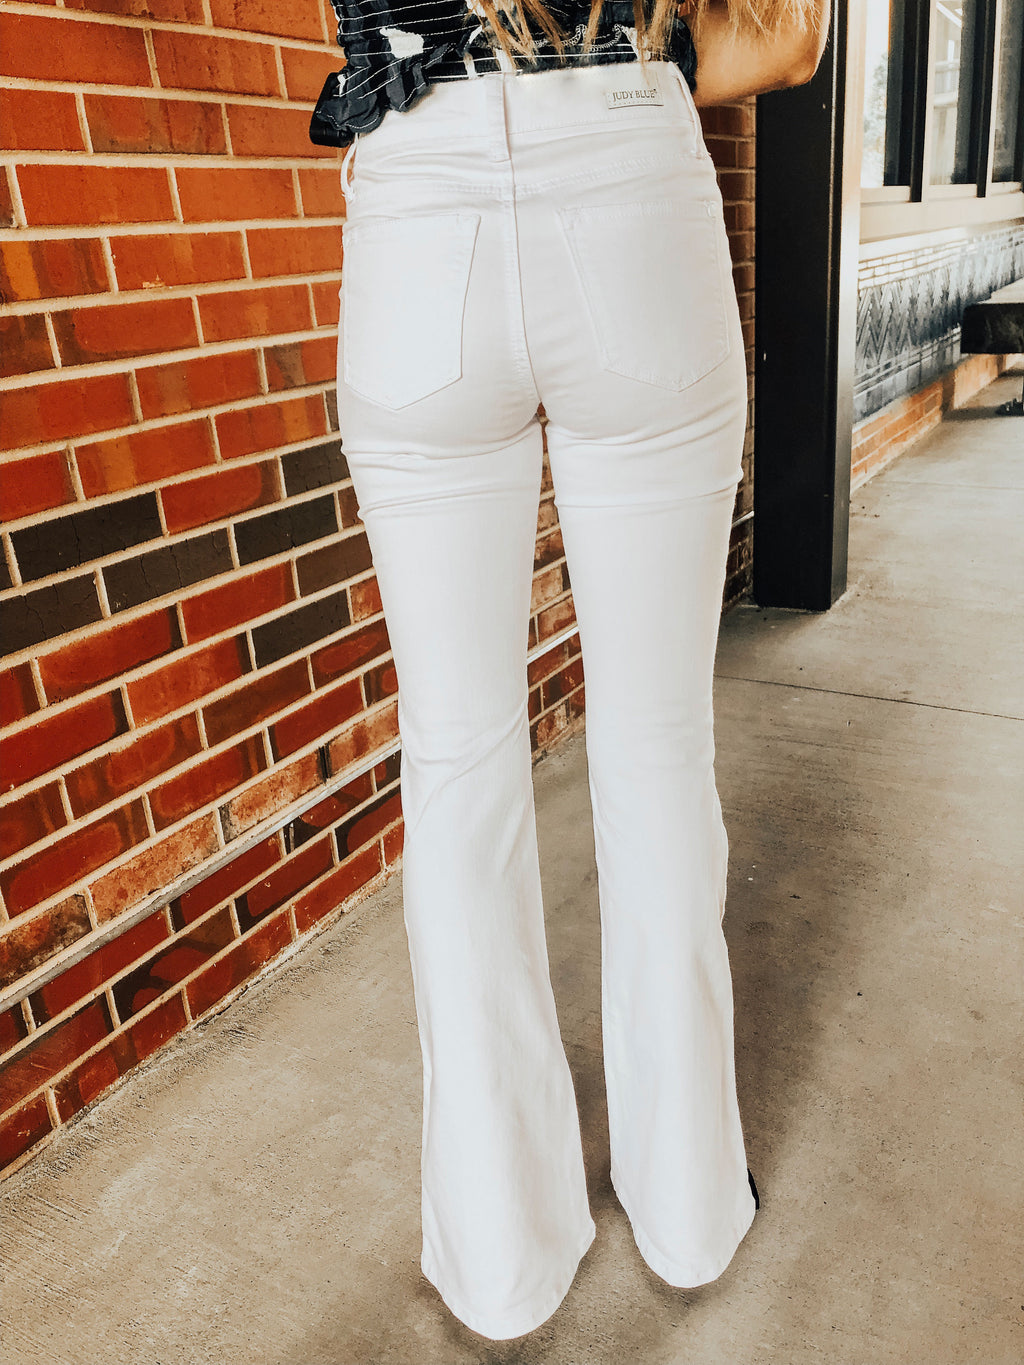 JUDY BLUE - WHITE FLARES - MID RISE